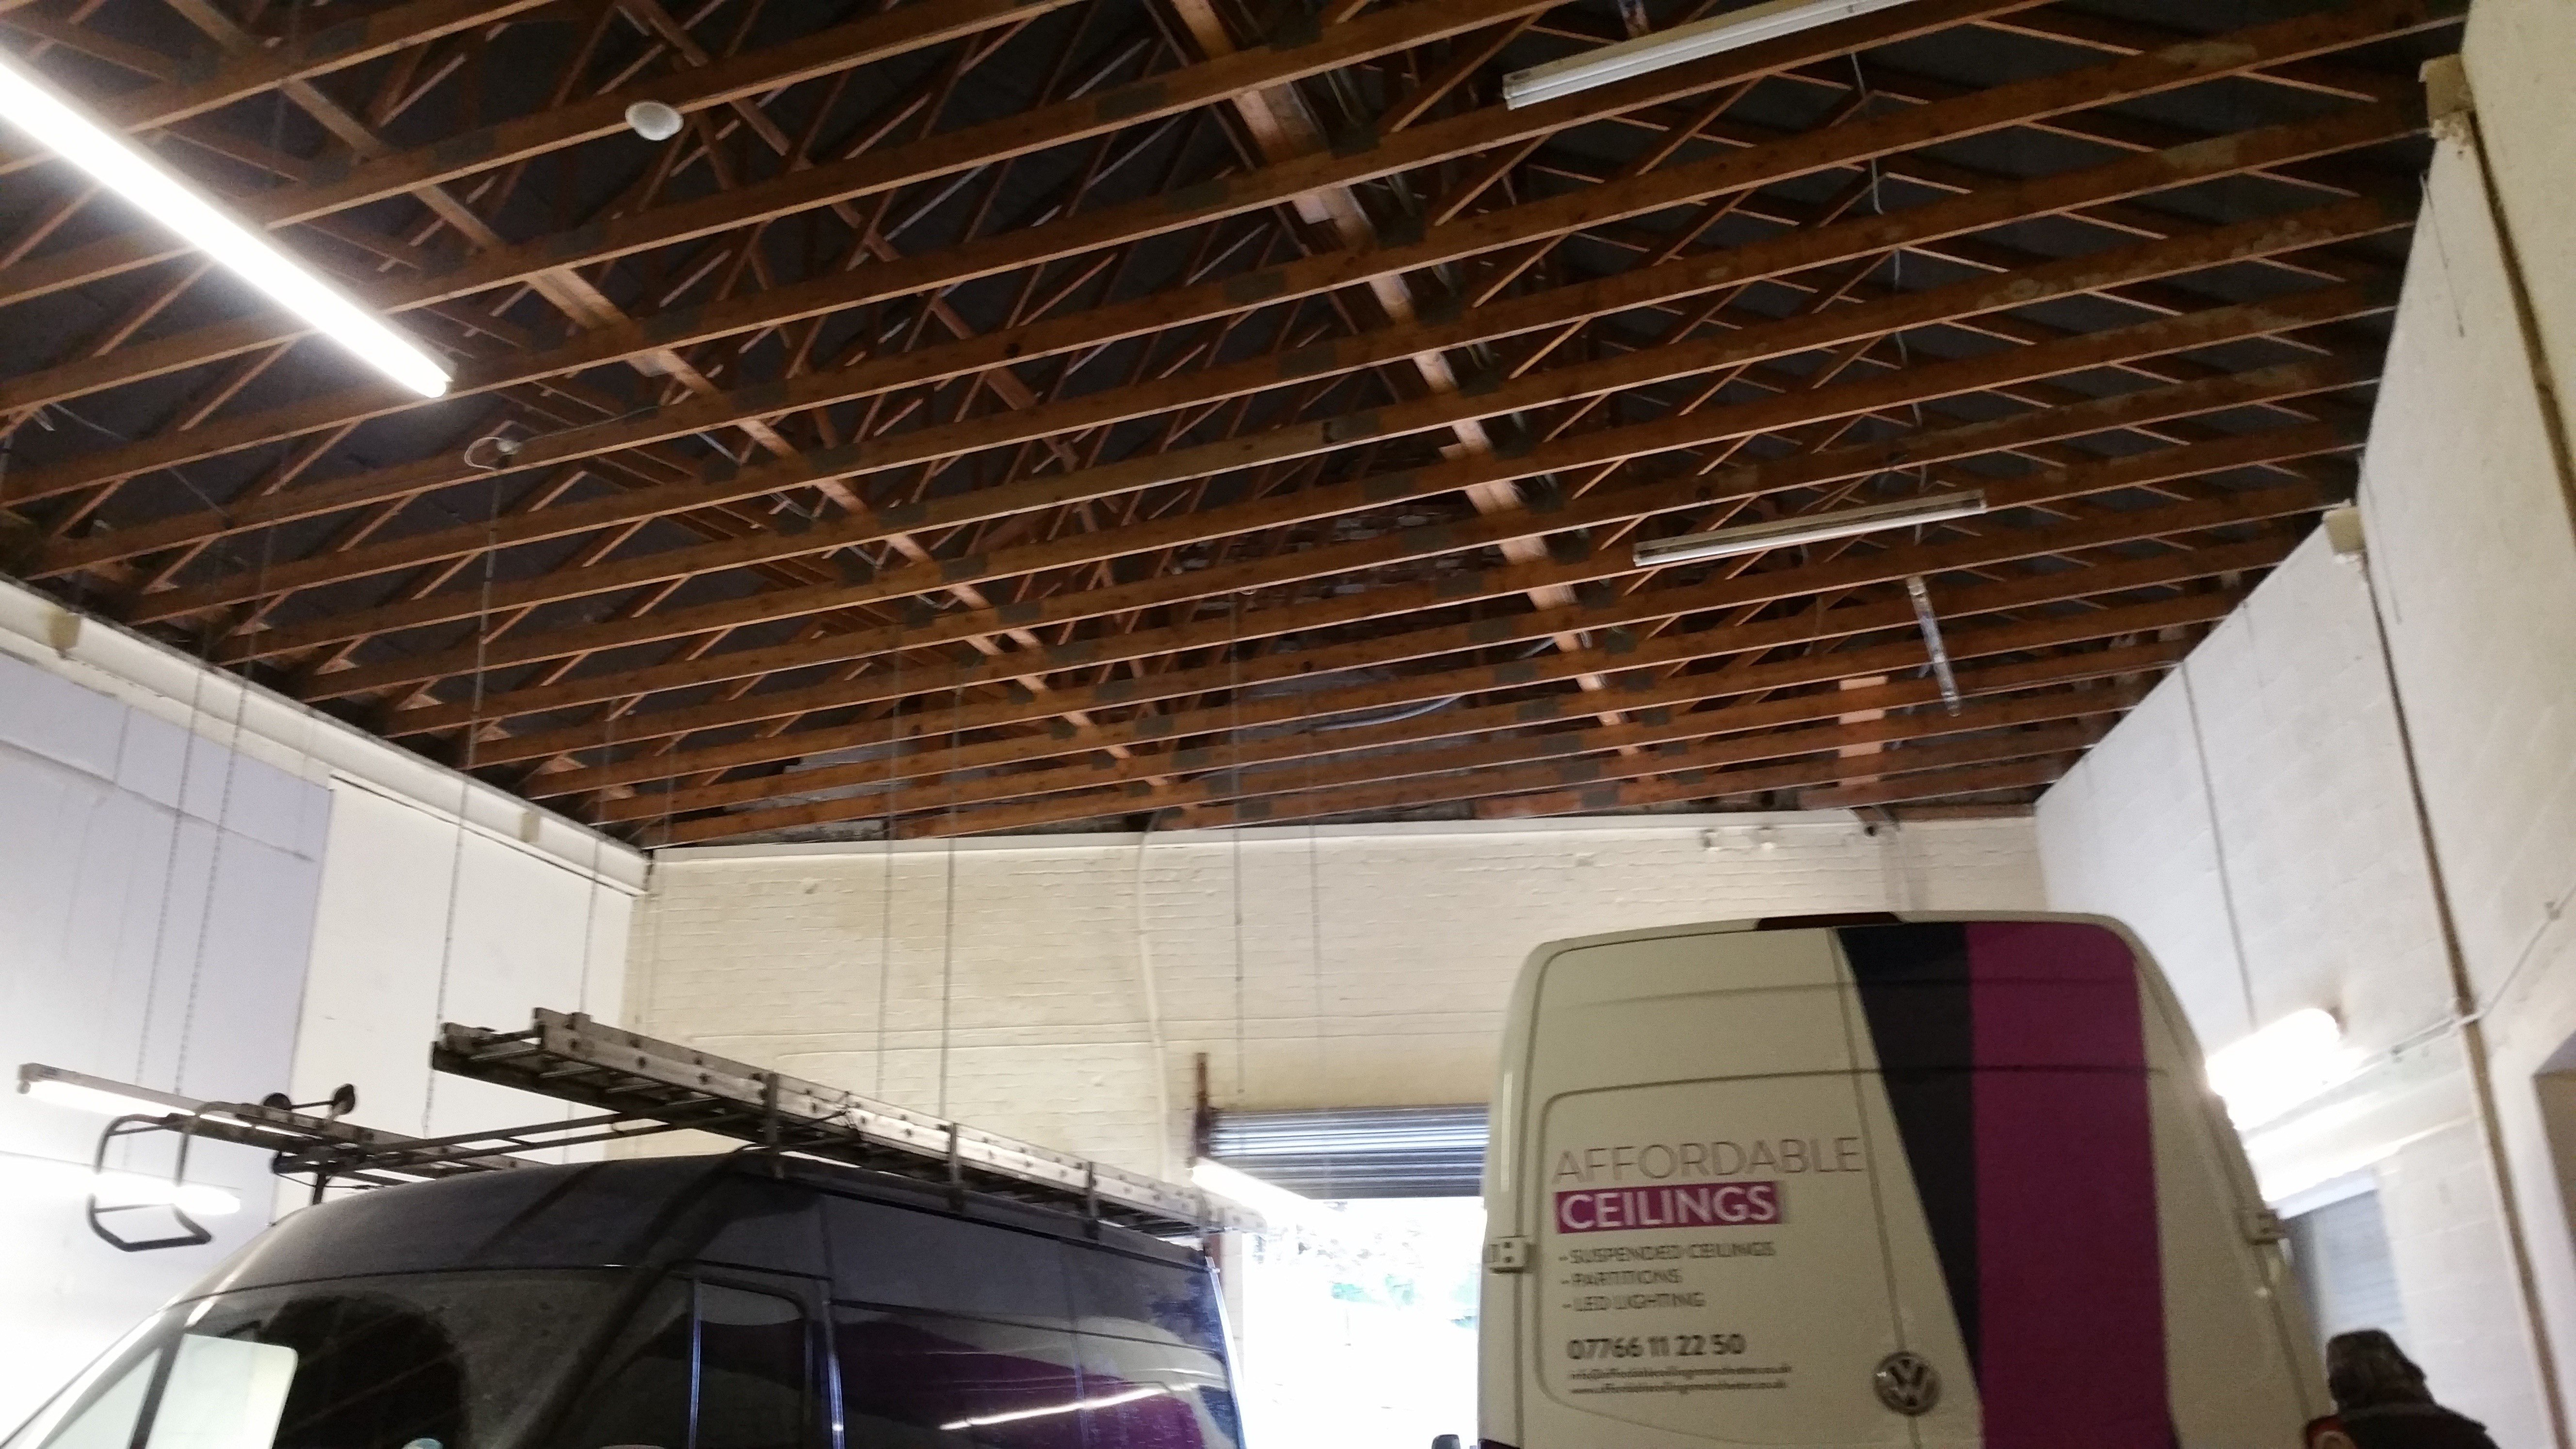 Exposed timber ceiling beams